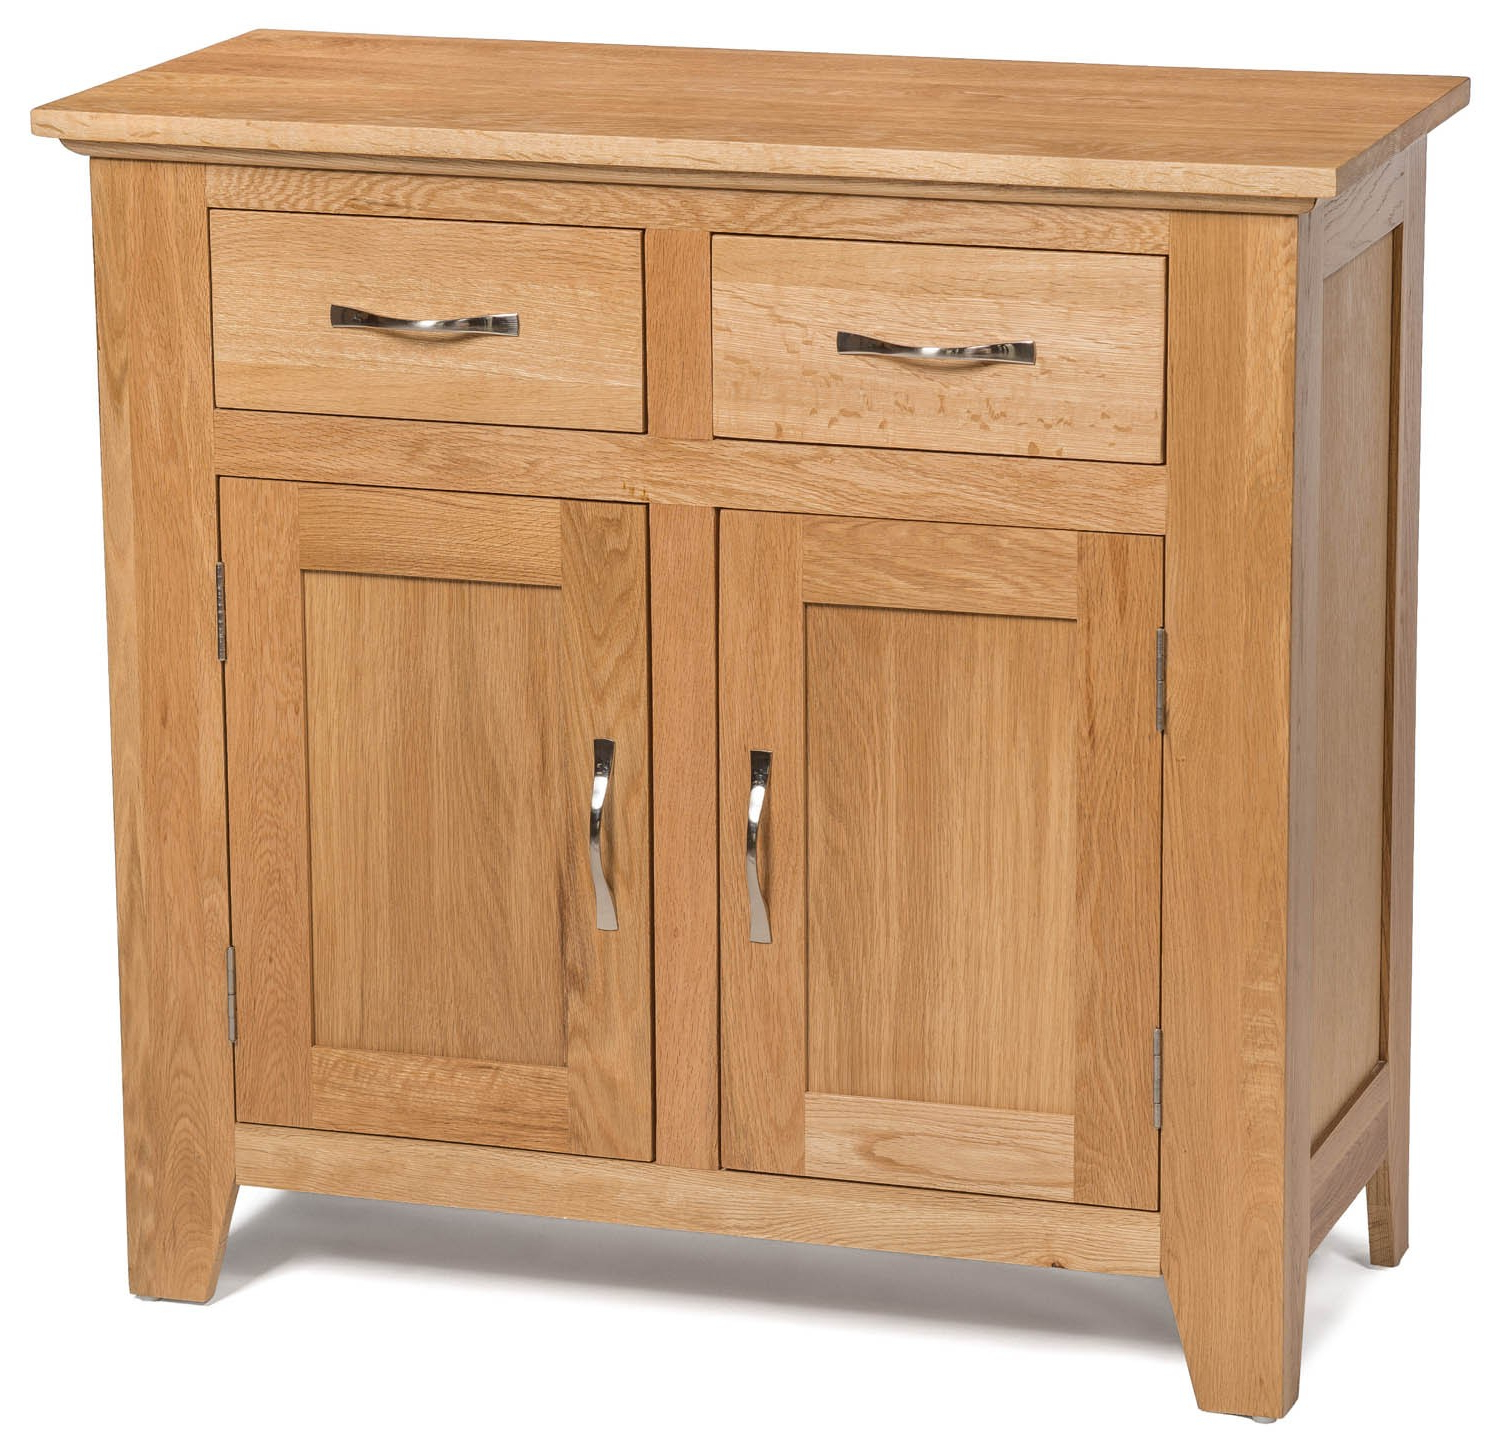 Camberley Oak Small 2 Door 2 Drawer Sideboard – Sideboards & Tops Throughout Preferred Walnut Finish 2 Door/3 Drawer Sideboards (View 4 of 20)